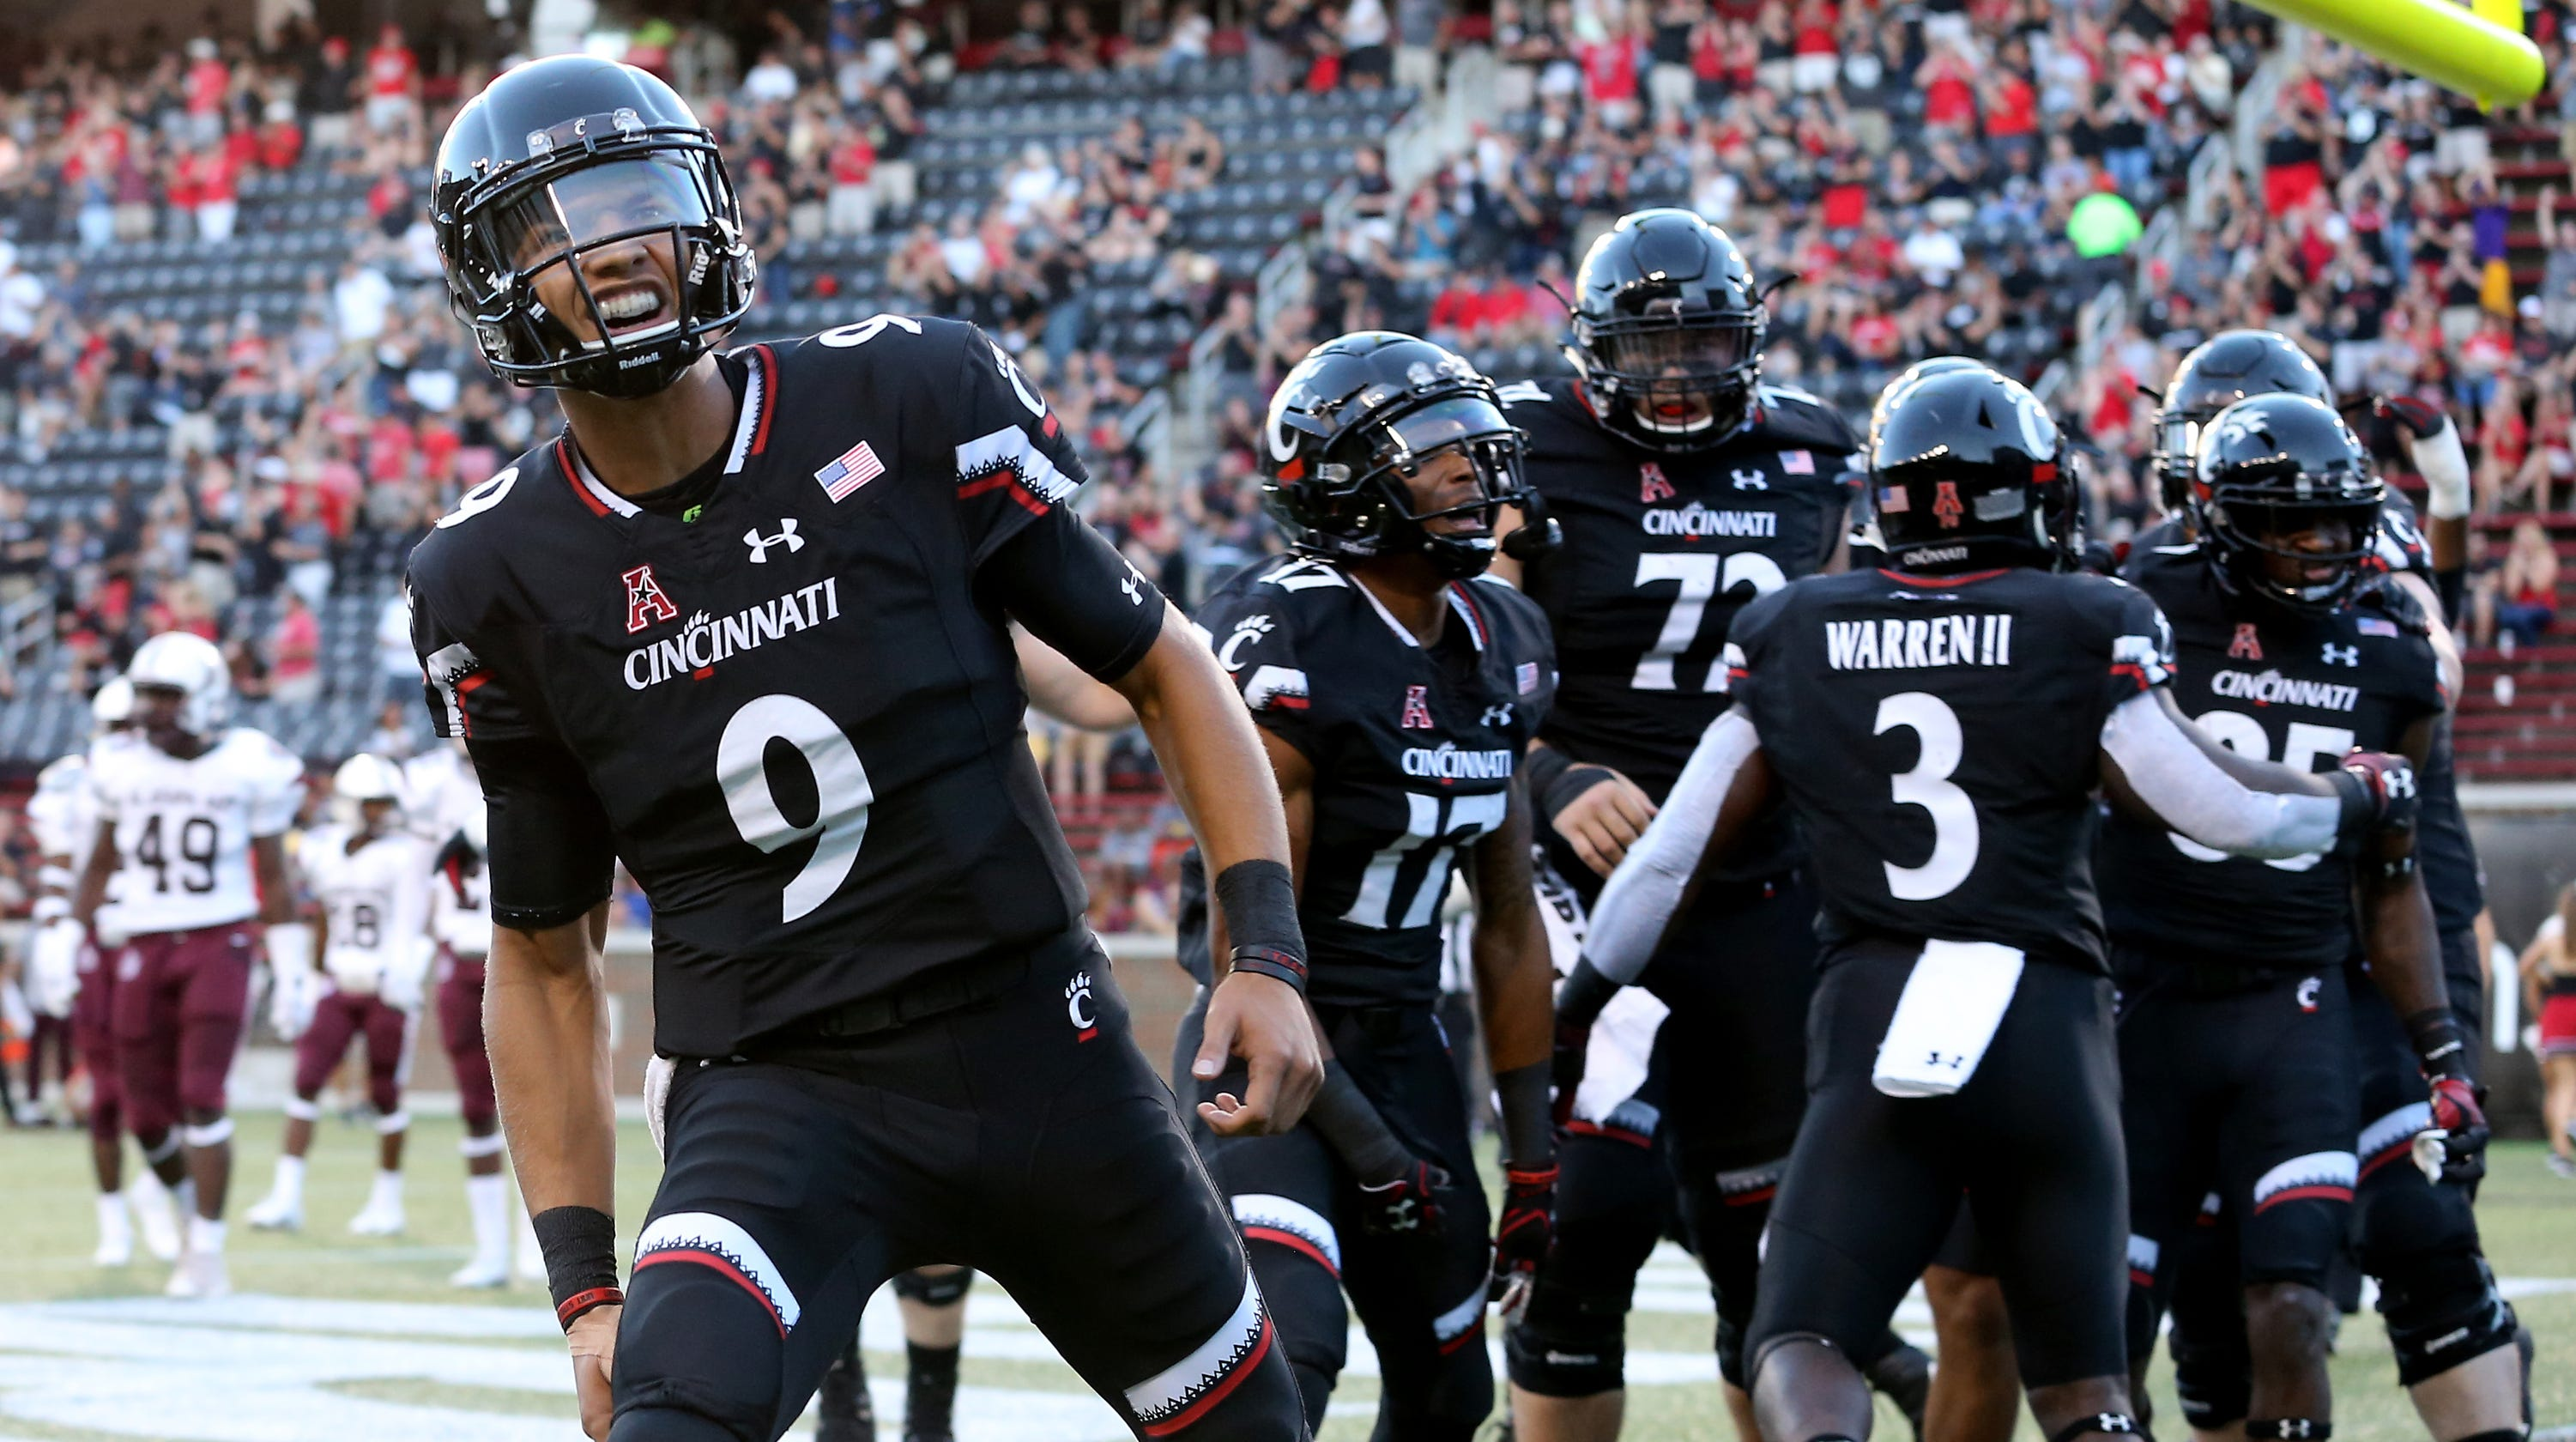 UC Bearcats football team moves up in weekly AAC power ...